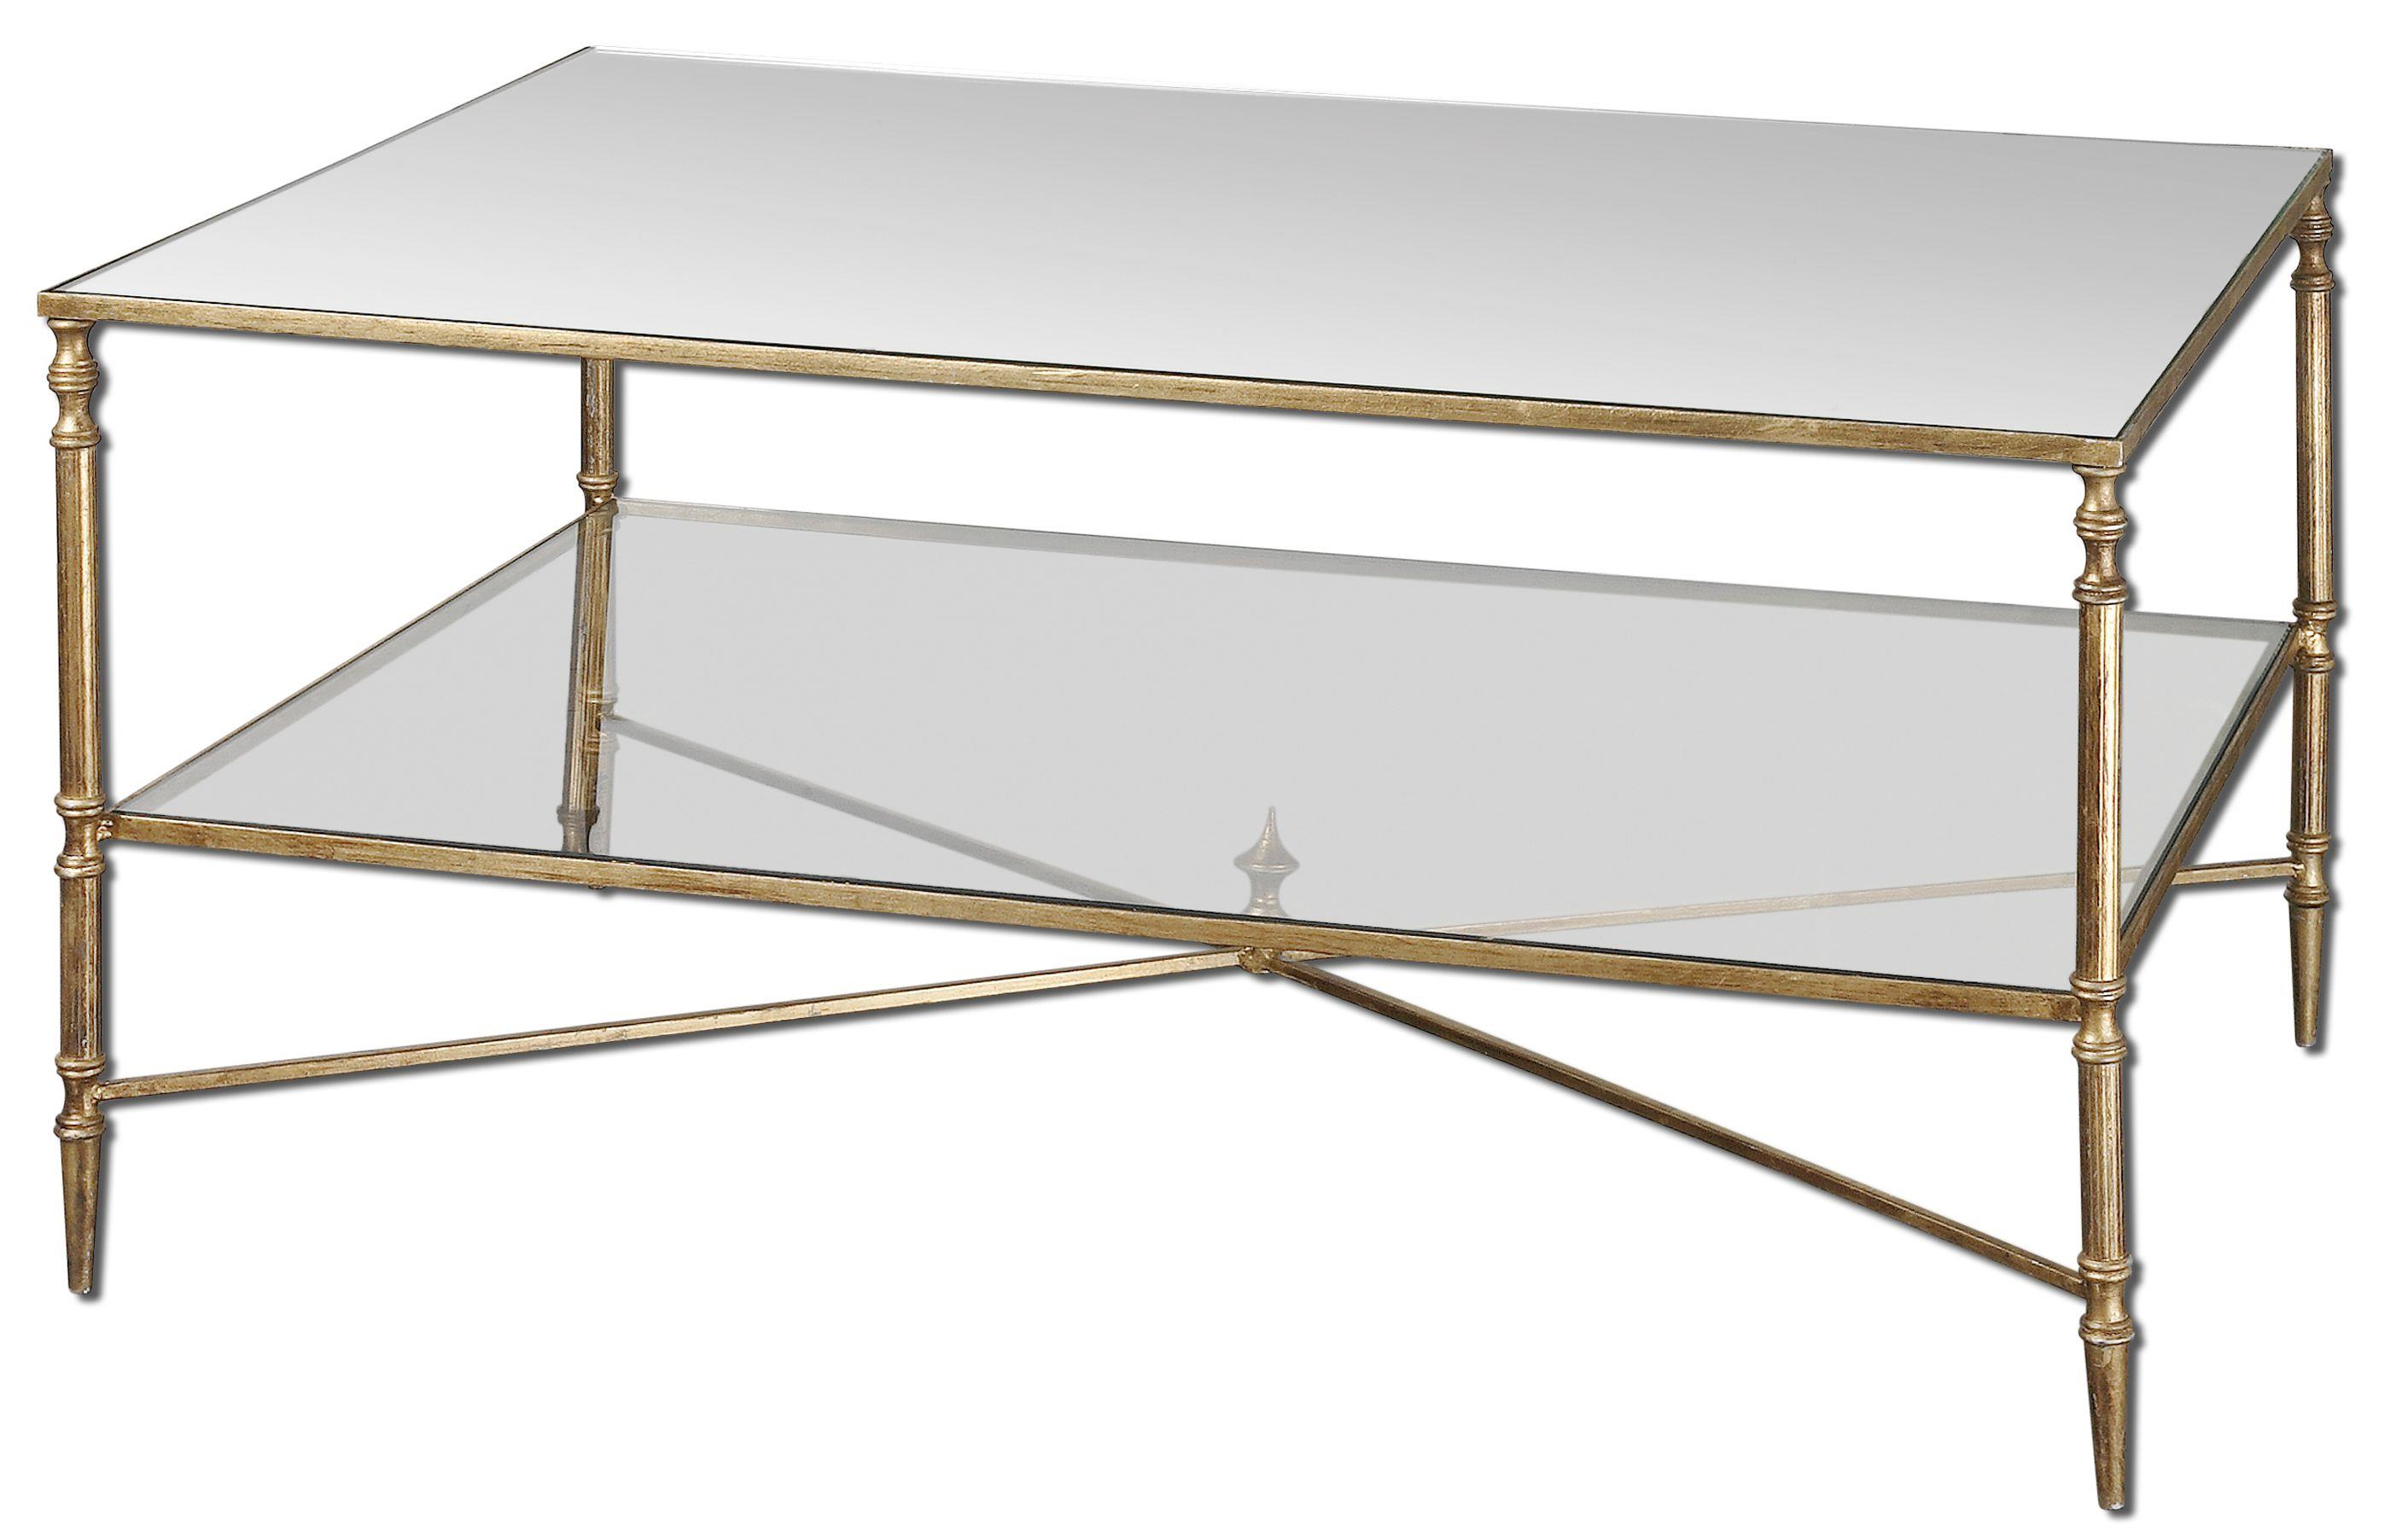 Nesting Coffee Tables Ikea Of Inspiration Idea Glass Coffee Table With Tempered Glass Elegant Coffee Table (Image 3 of 9)